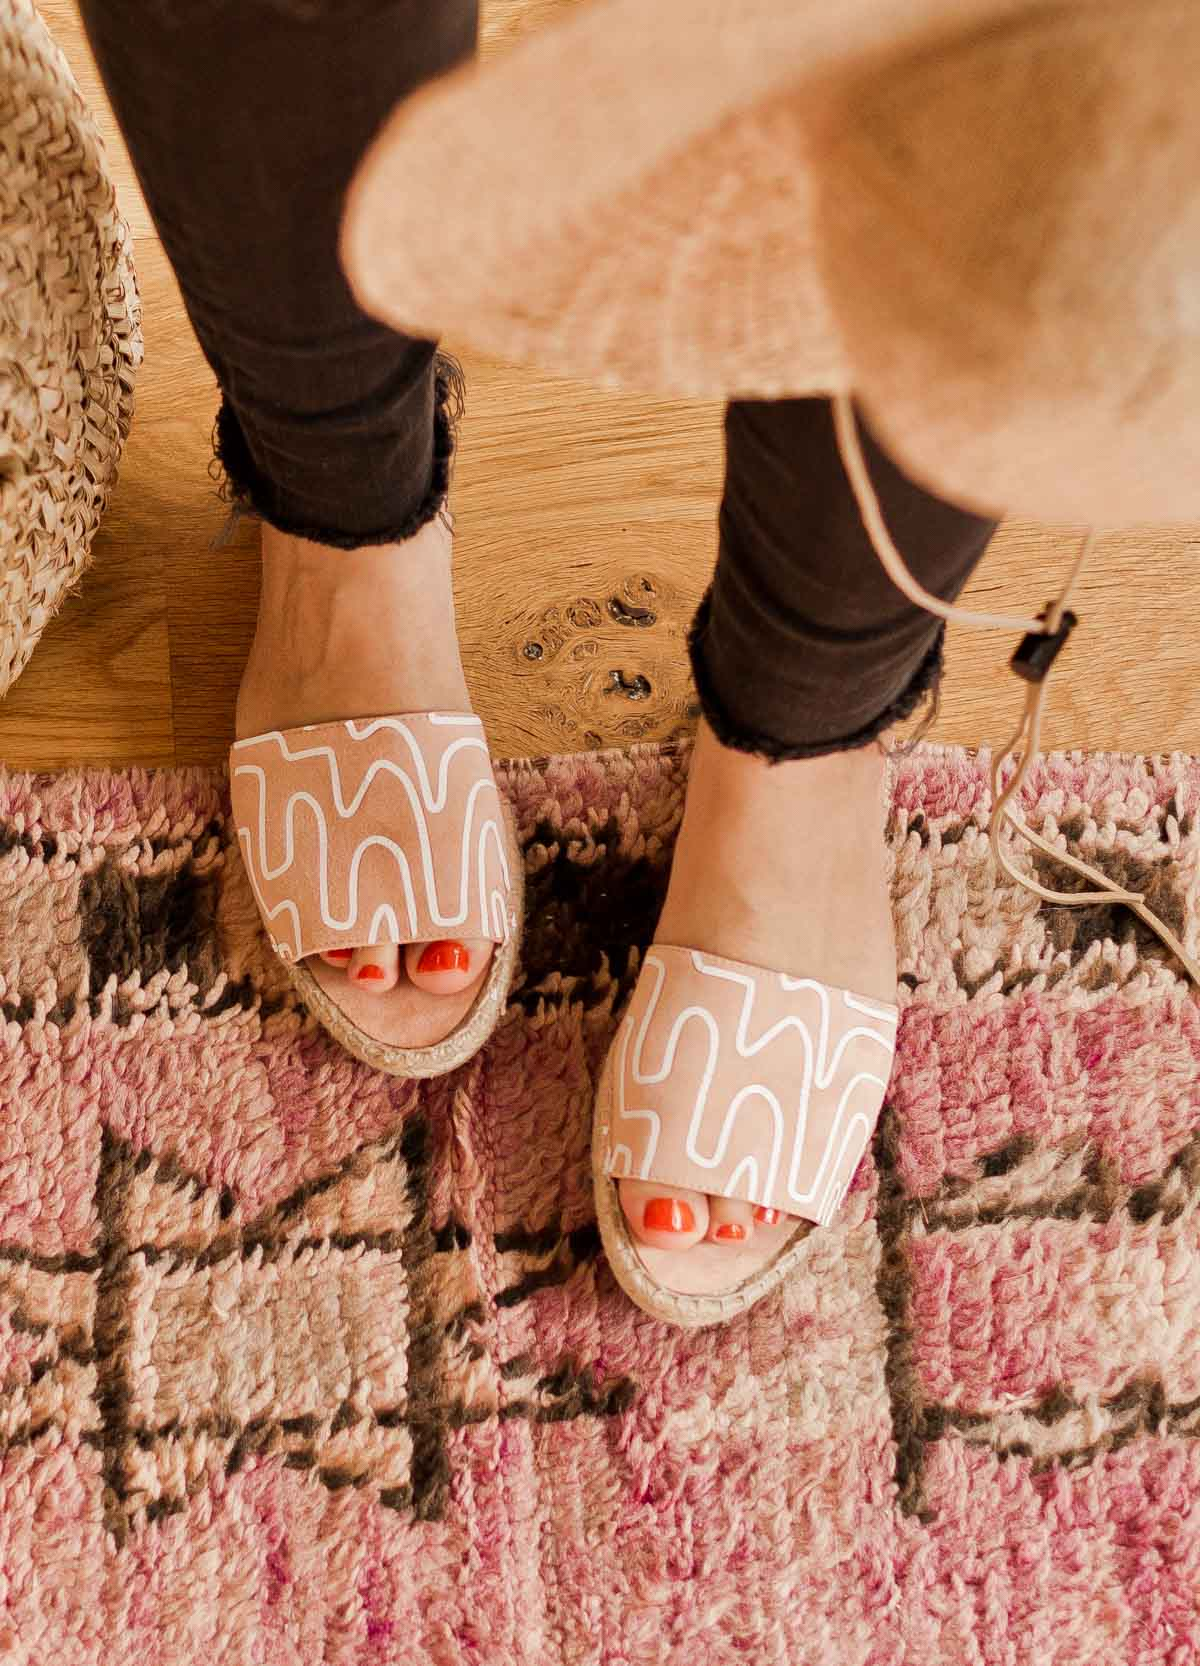 DIY Sandals Idea: Give old sandals new life with a quick (and easy) makeover. Click through for the tutorial AND free downloadable patterns to add unique prints to nearly anything you can think of. #diy #diysummer #summer #summeraccessories #sandals